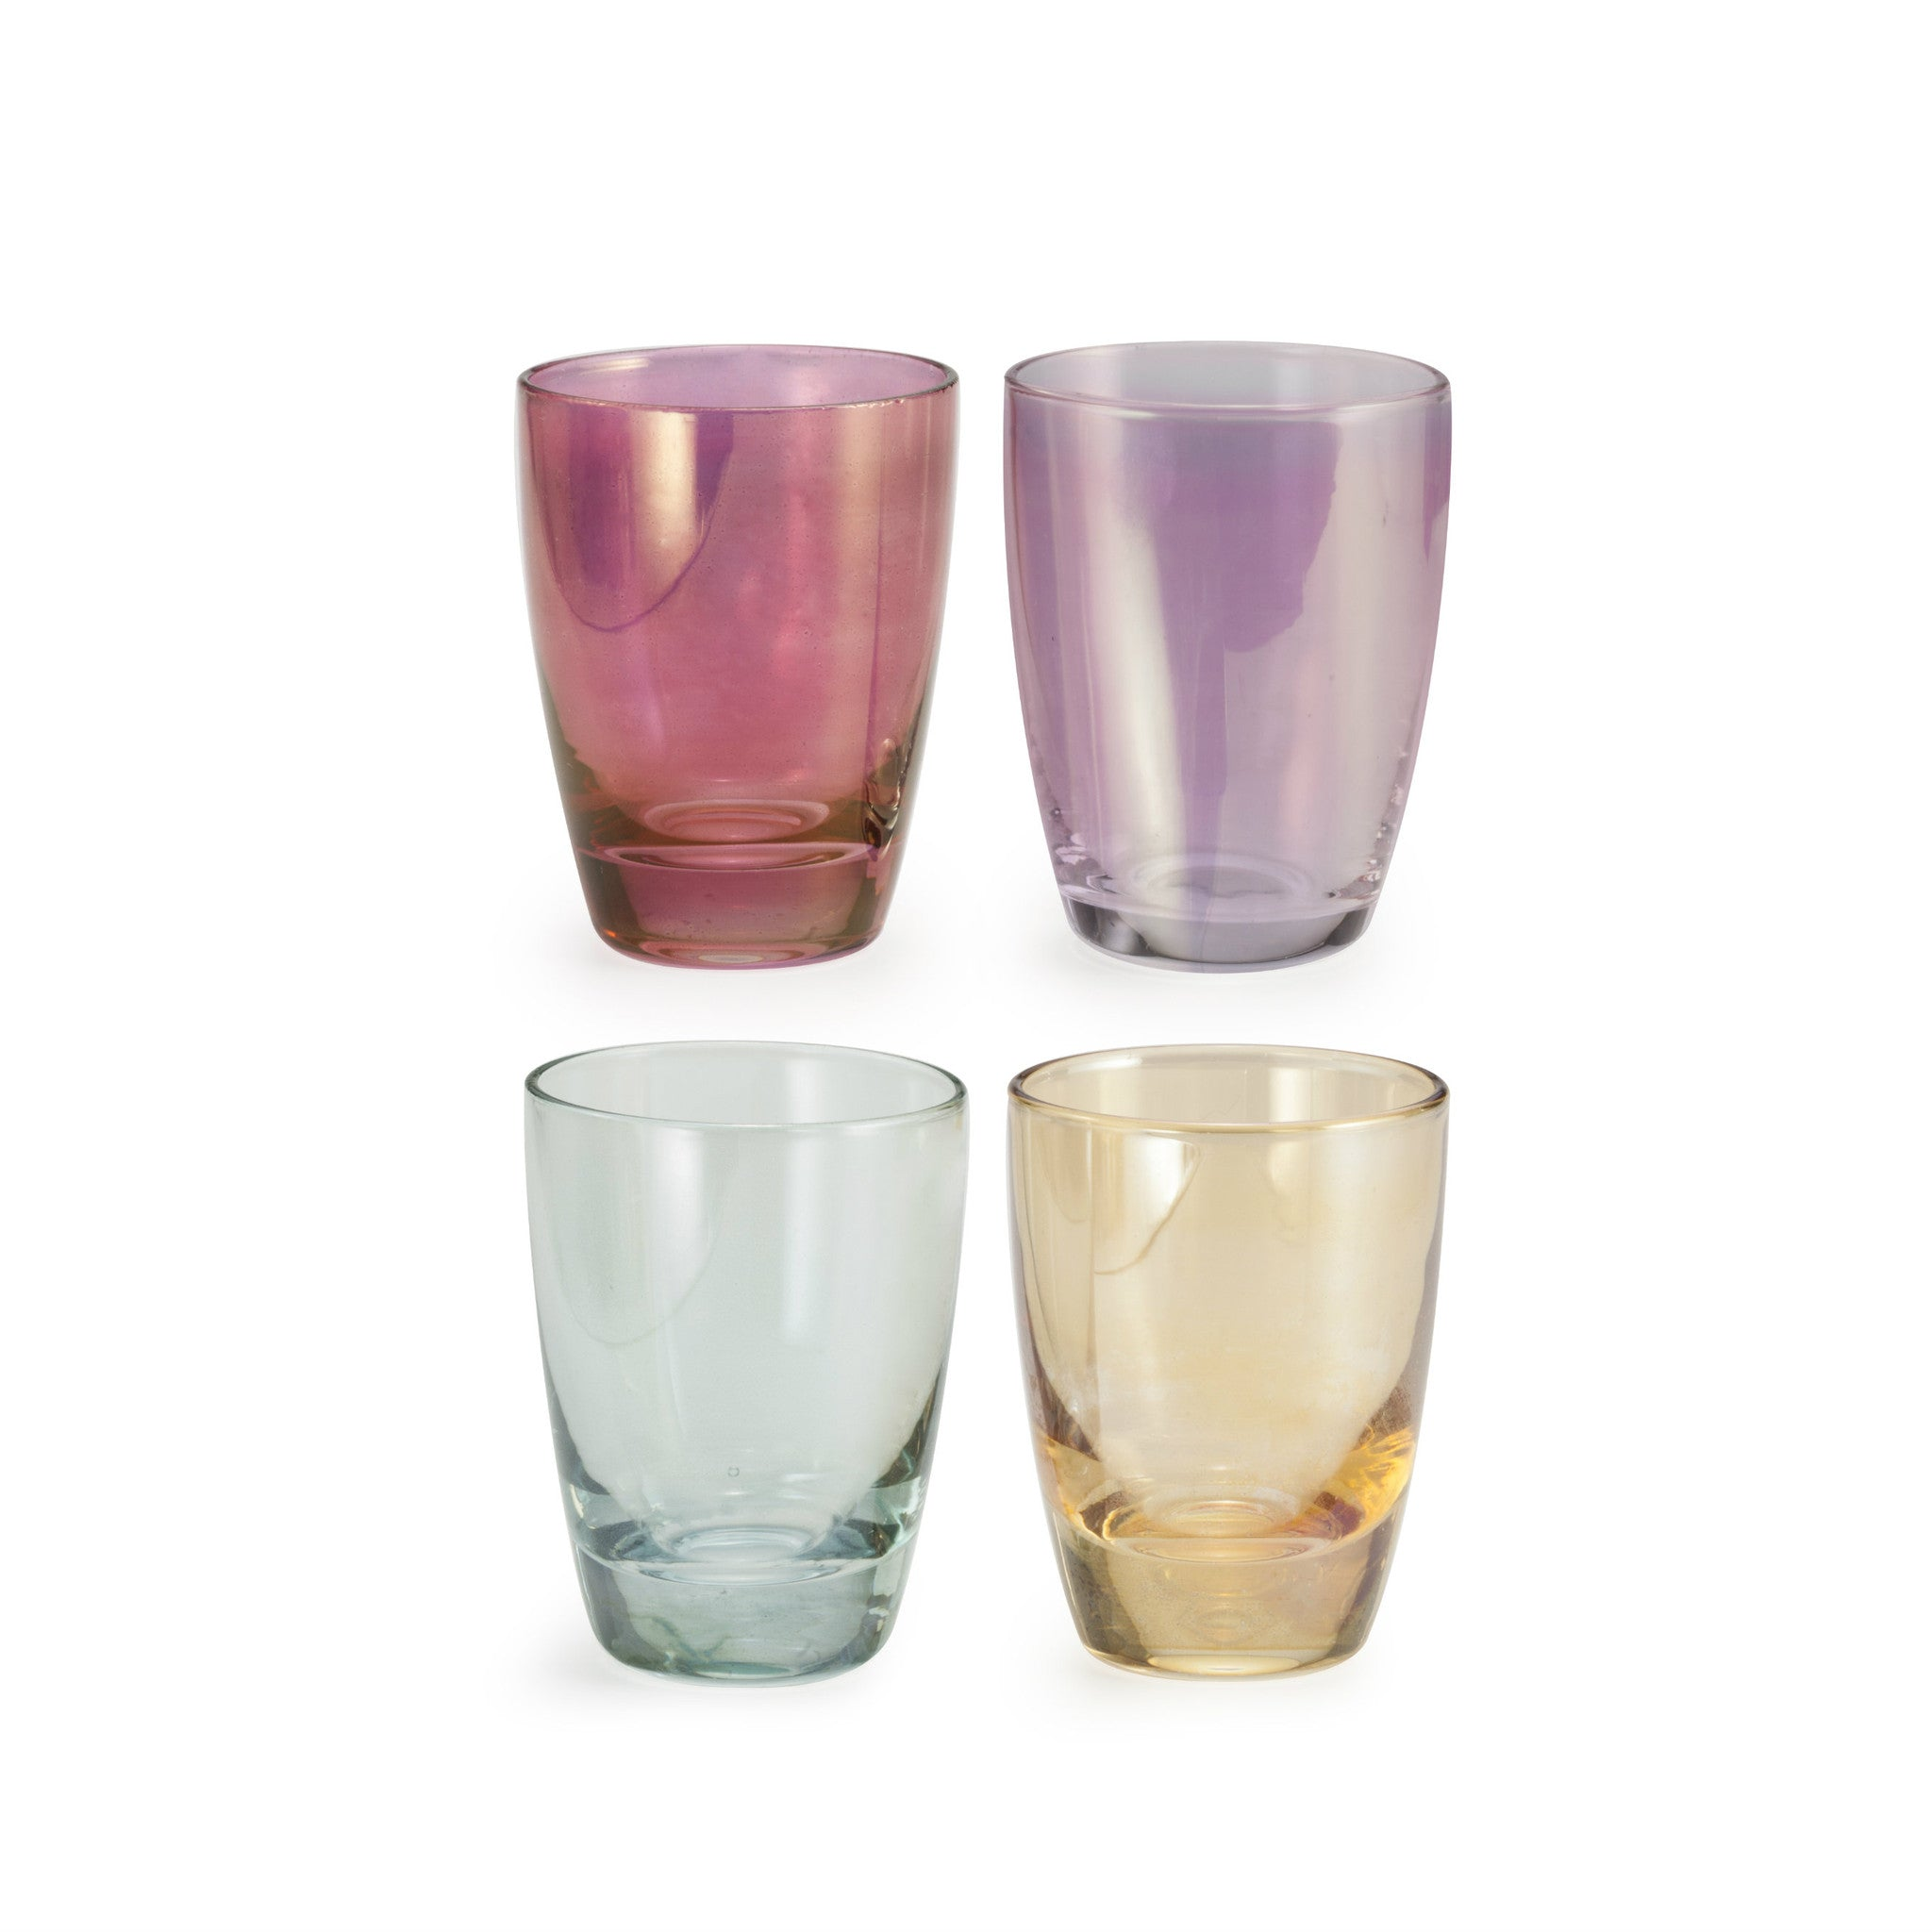 Chez Elle Lustre Shot Glass - Set of 4 - CARLYLE AVENUE